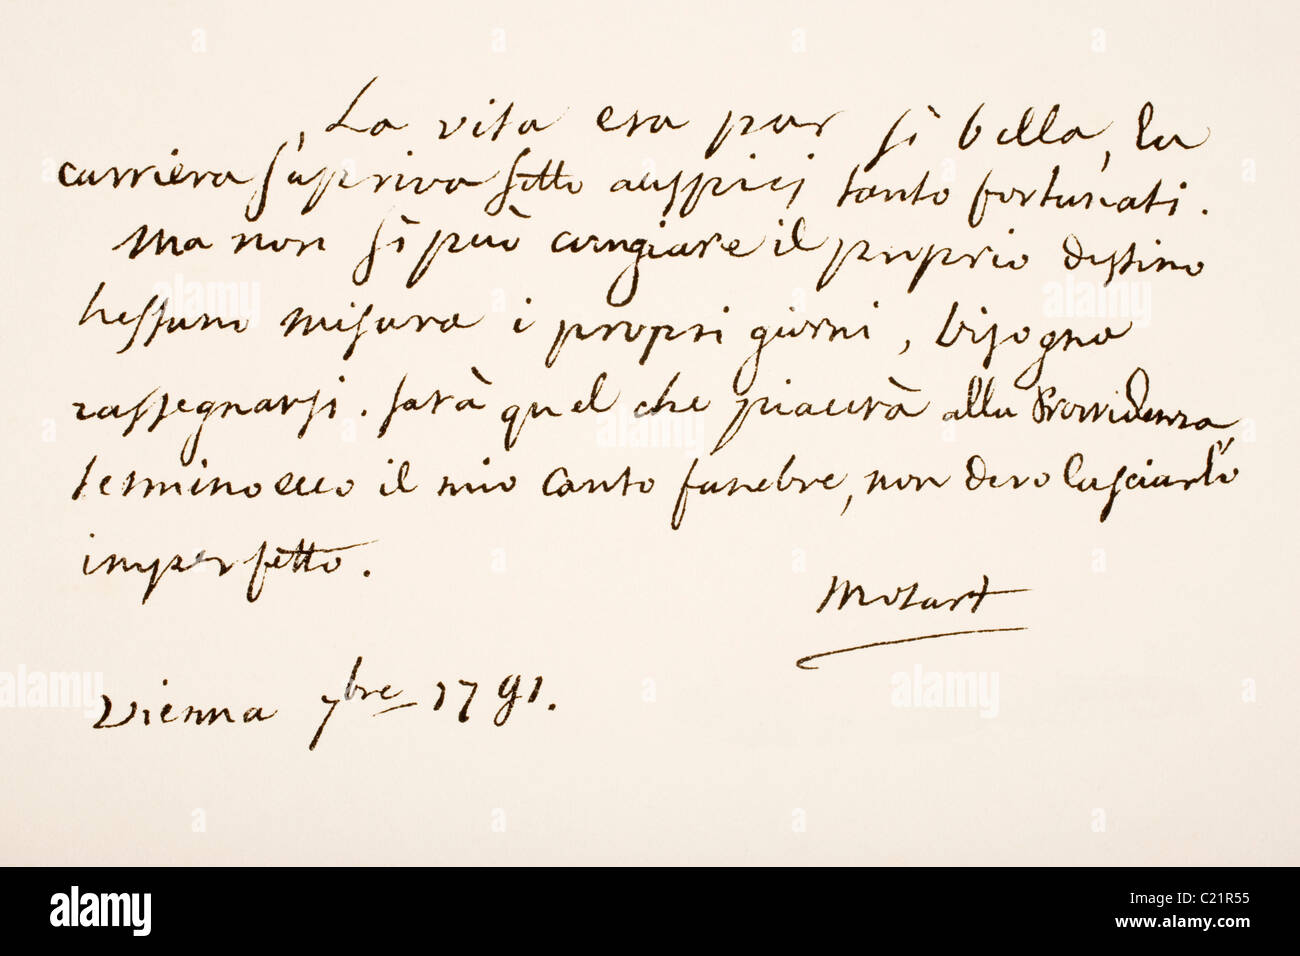 Wolfgang Amadeus Mozart, 1756 - 1791. Austrian musician and composer. Hand writing sample. - Stock Image